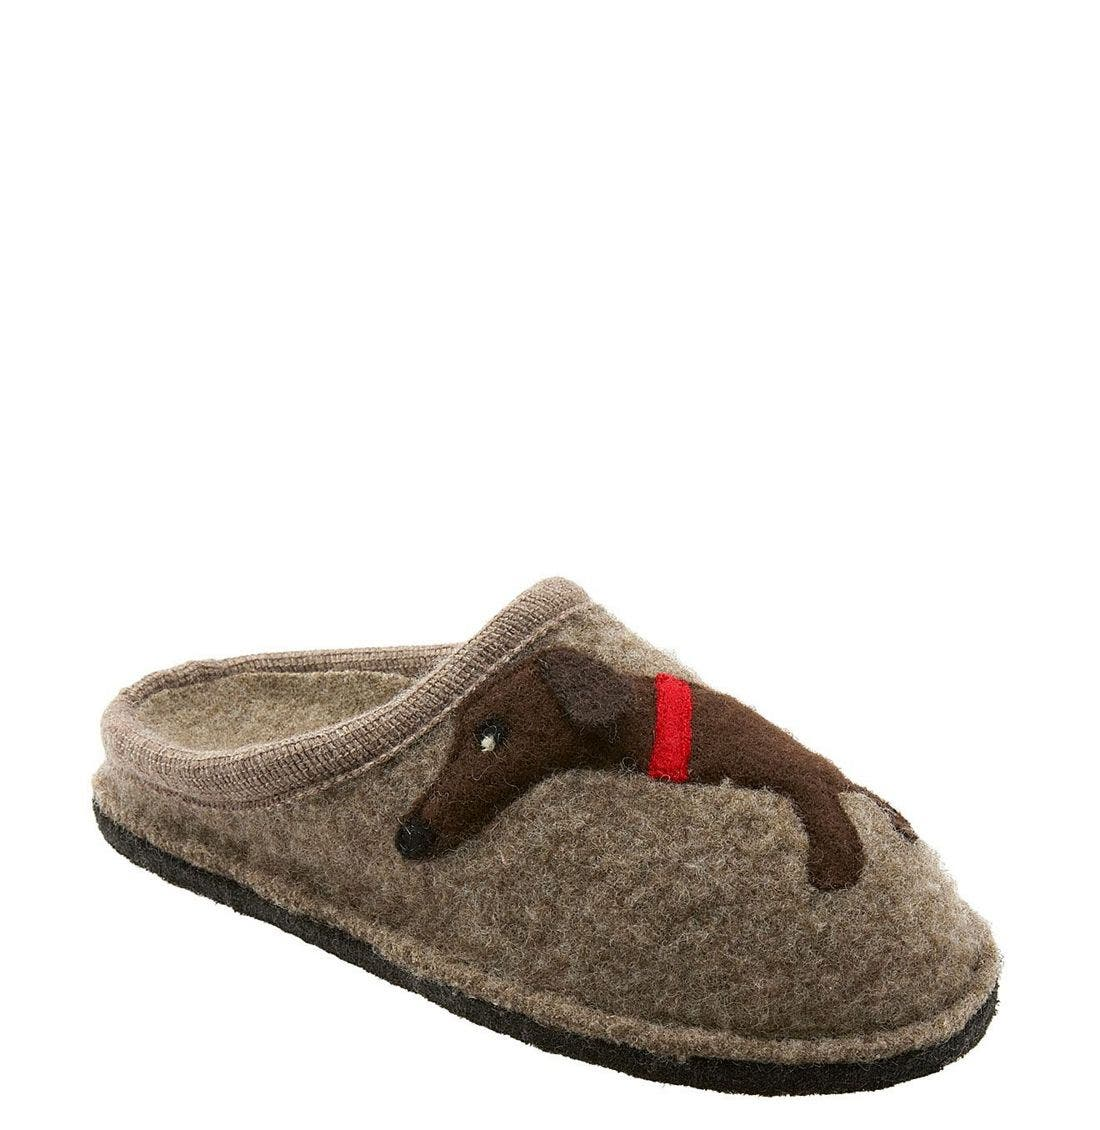 'Doggy' Slipper,                             Main thumbnail 1, color,                             EARTH